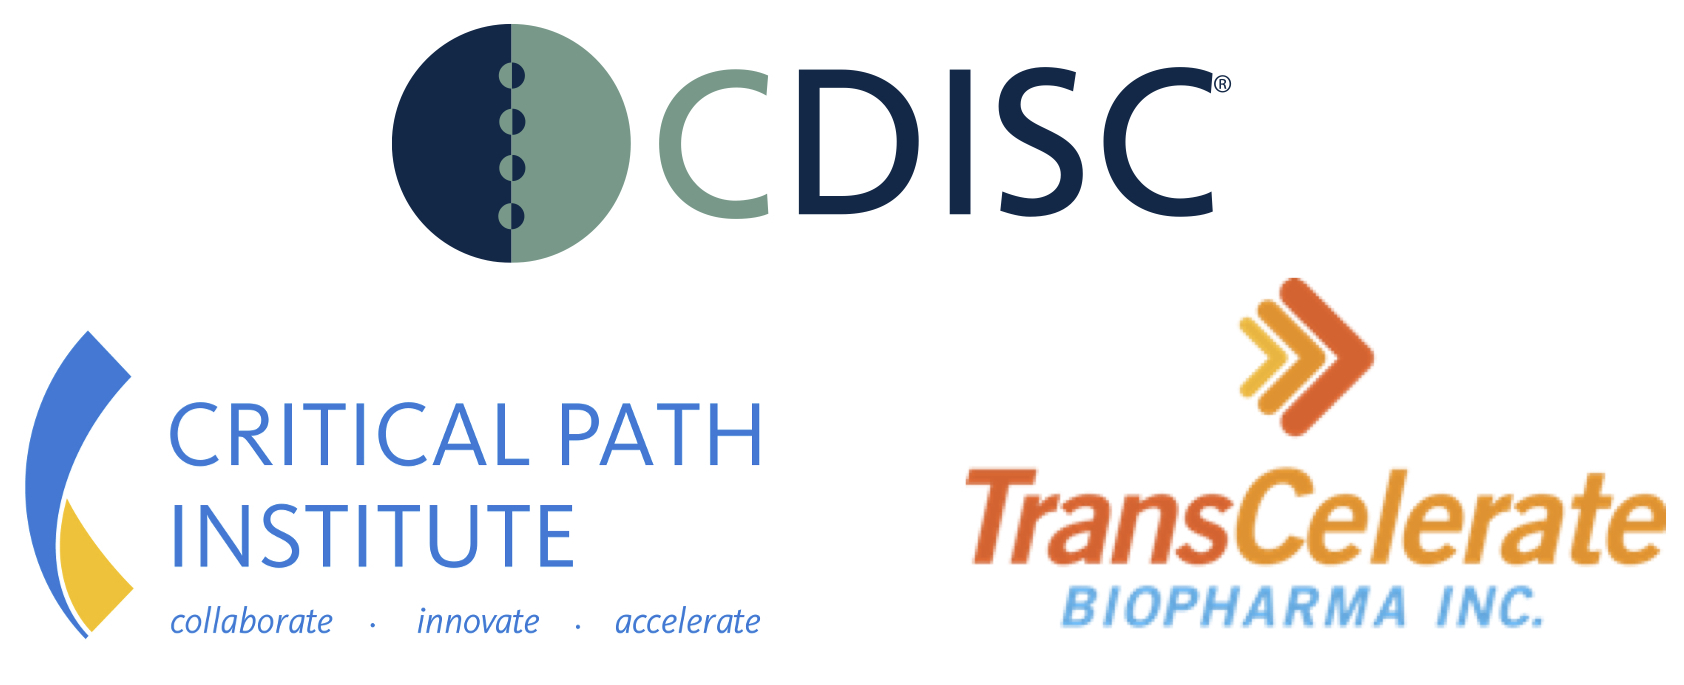 CDISC Releases Clinical Research Data Standards for Schizophrenia ...